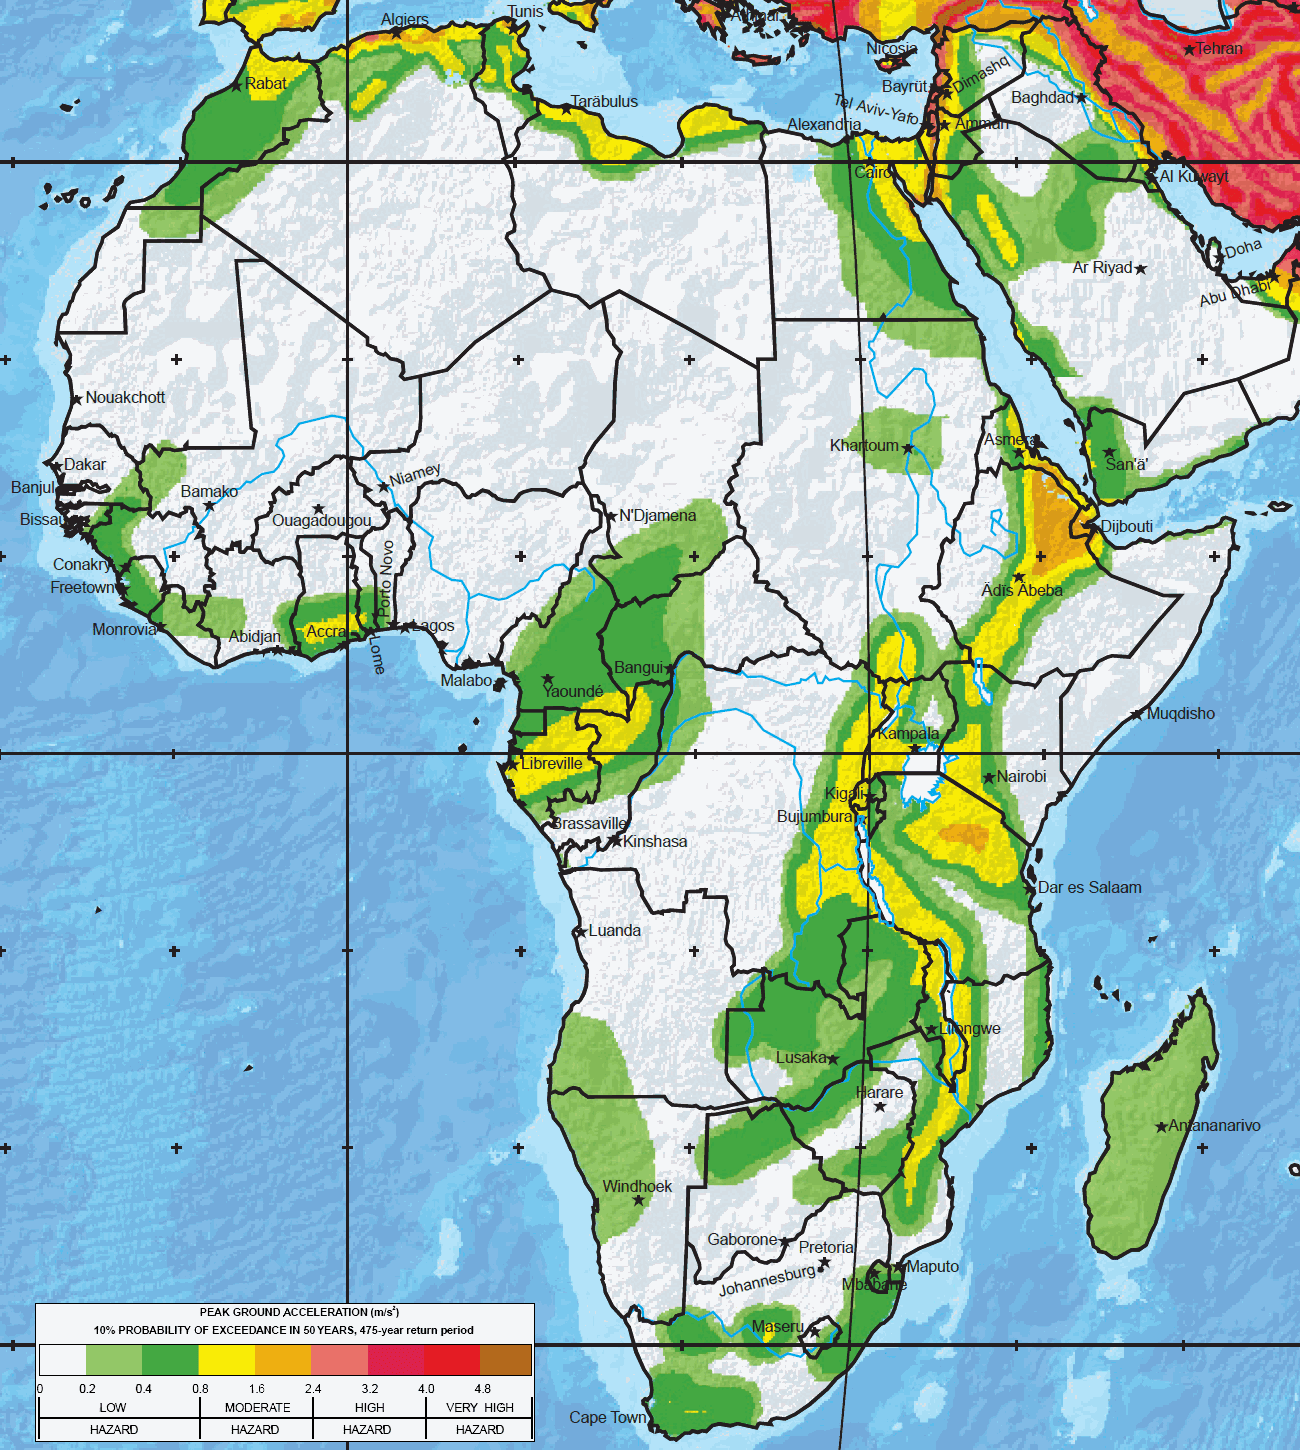 Major earthquake zones on each continent gumiabroncs Images